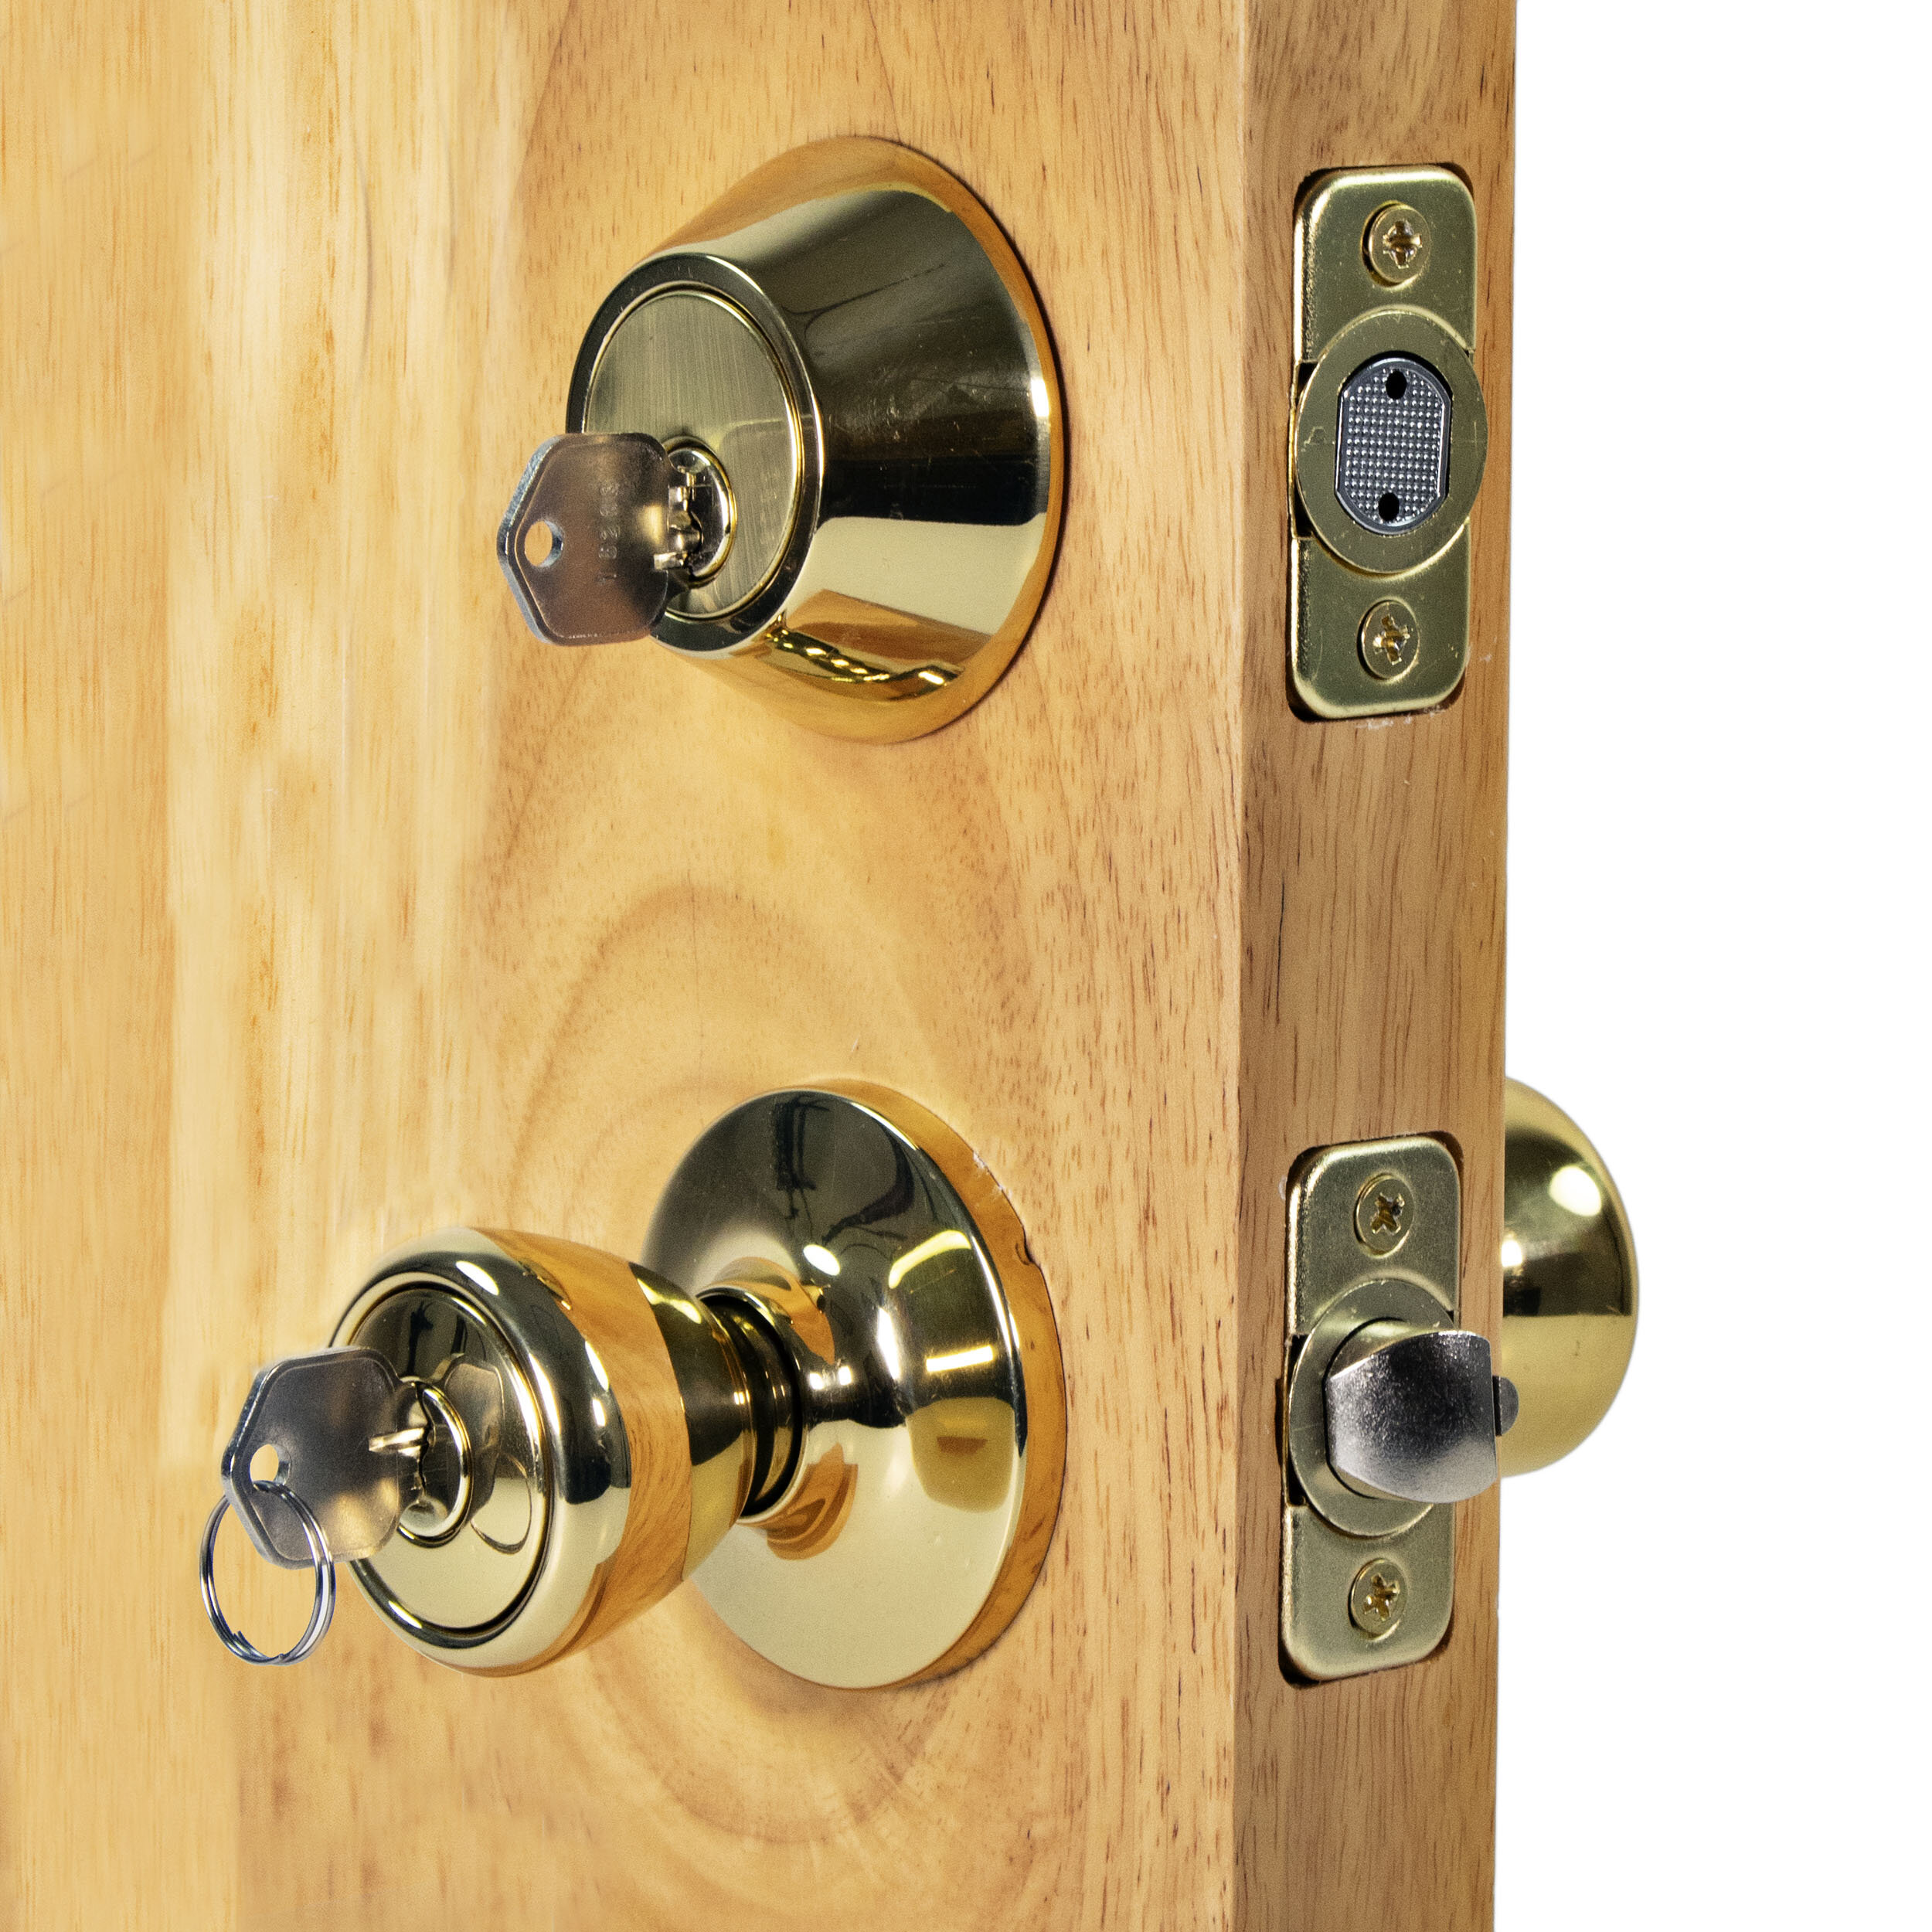 Ultra Security Complete Rittenhouse Entry Knob Set With Double Cylinder Deadbolt Wayfair